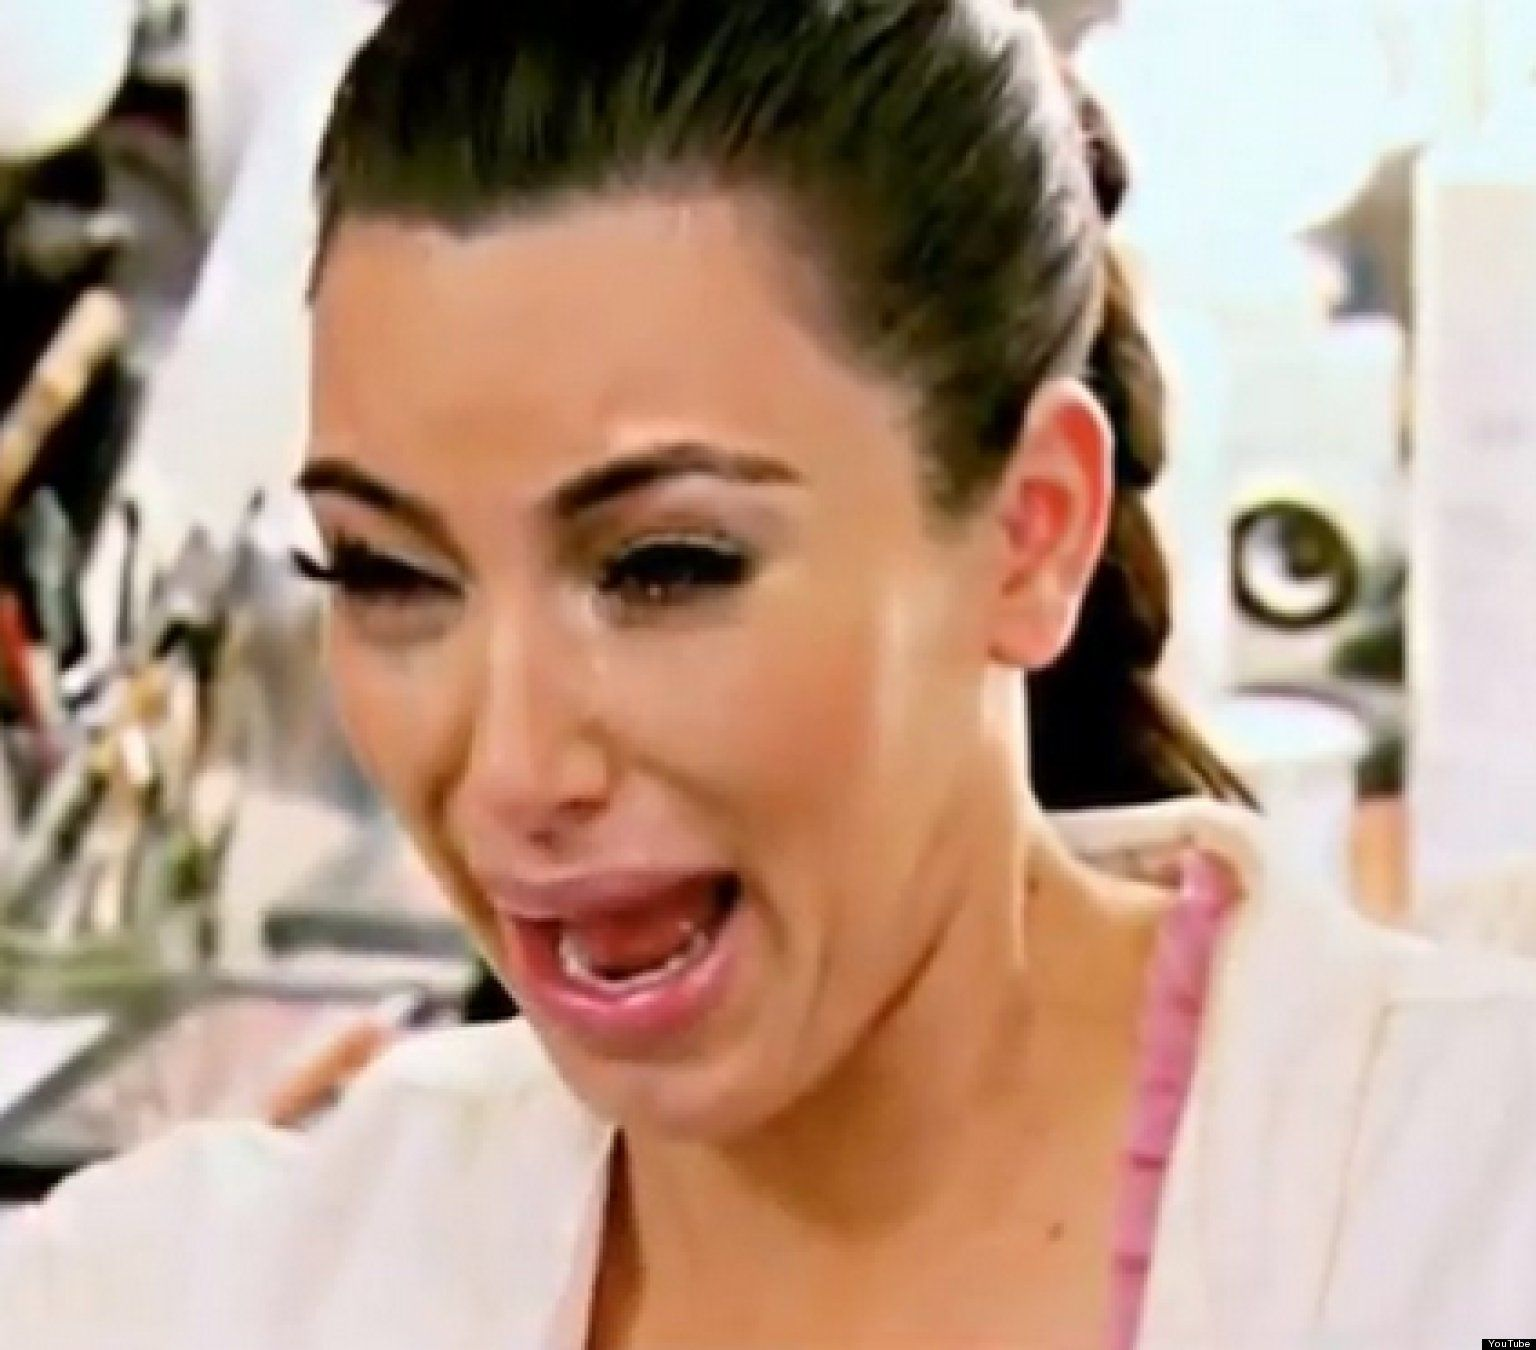 kim crying face meme